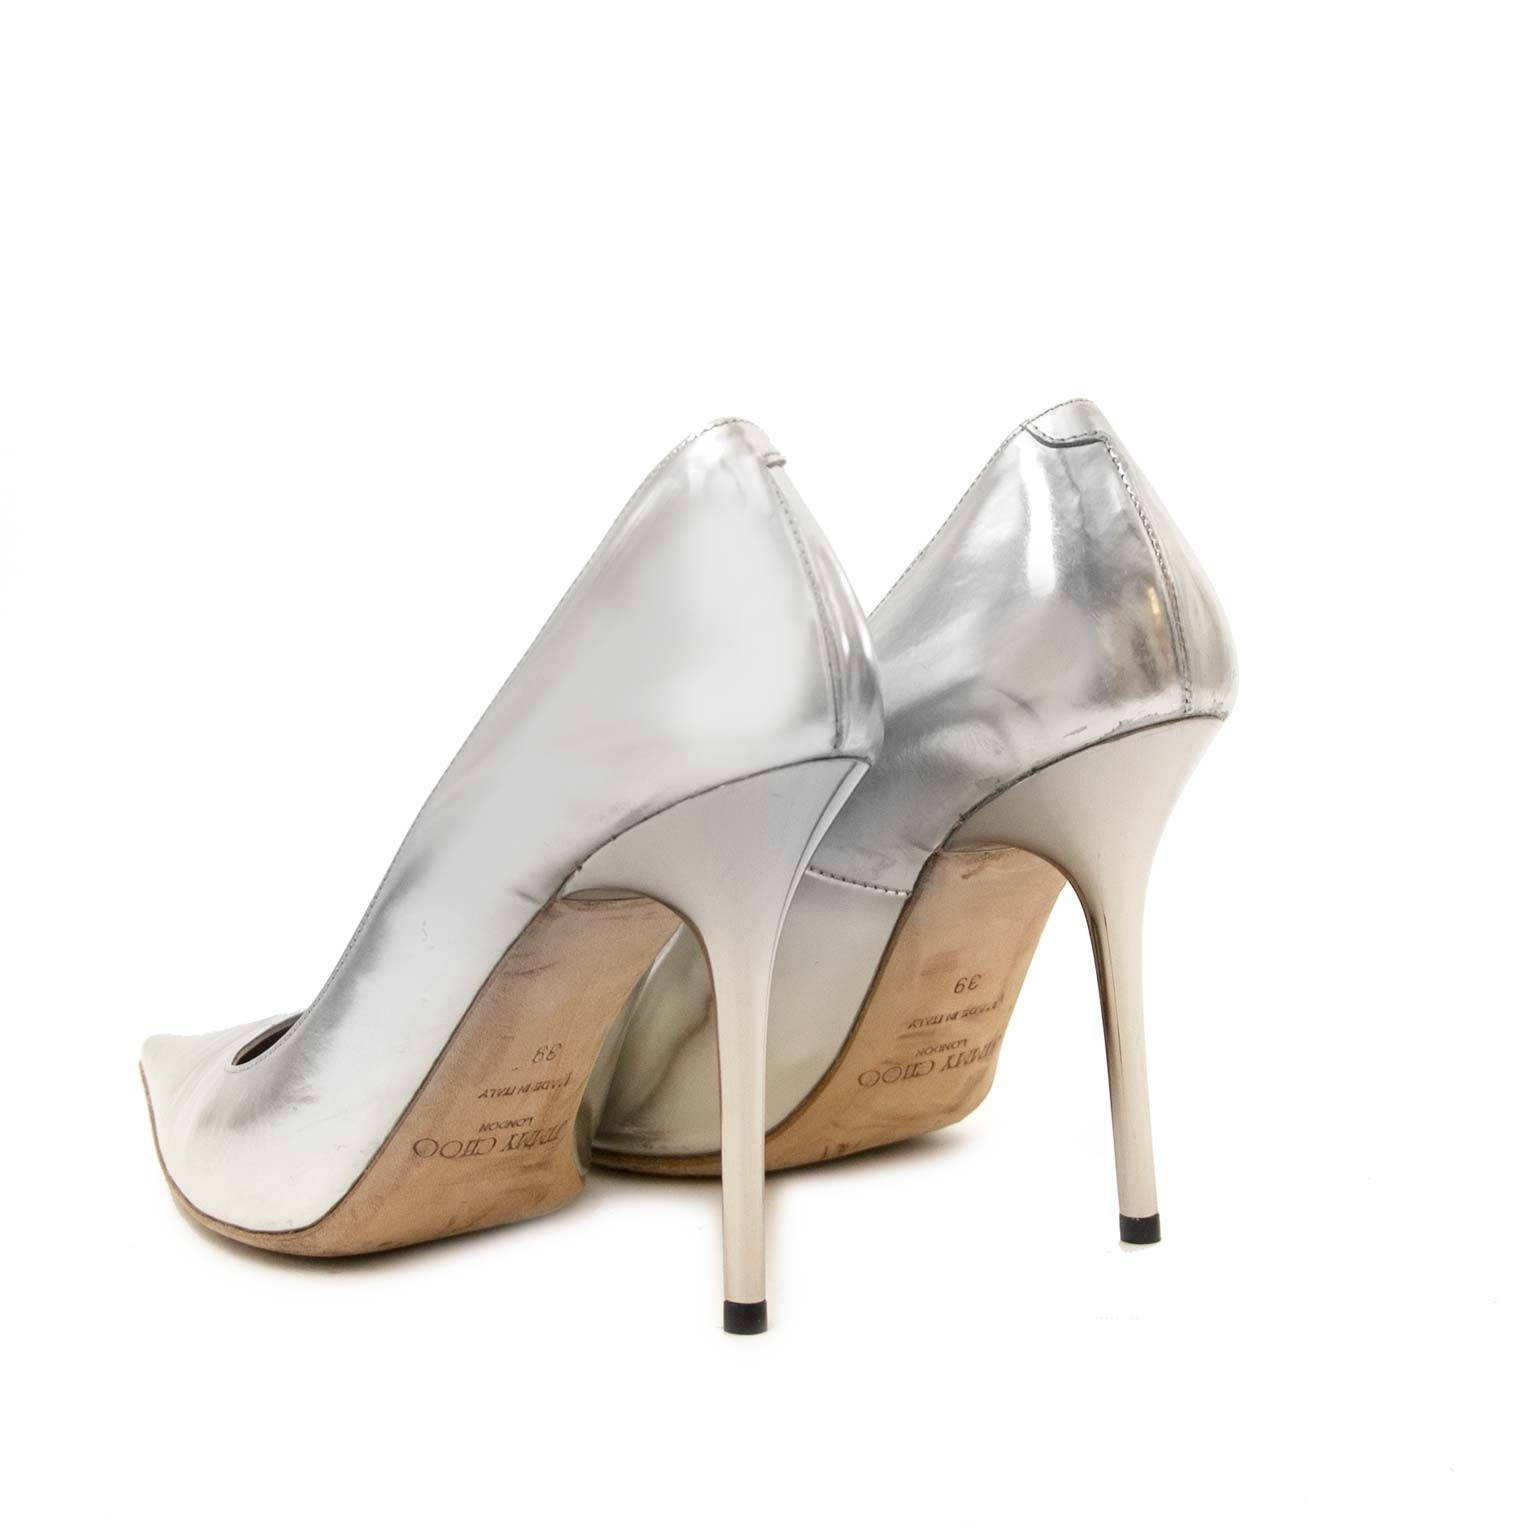 Buy and sell your authentic Jimmy Choo Metallic Silver Pumps - Size 39